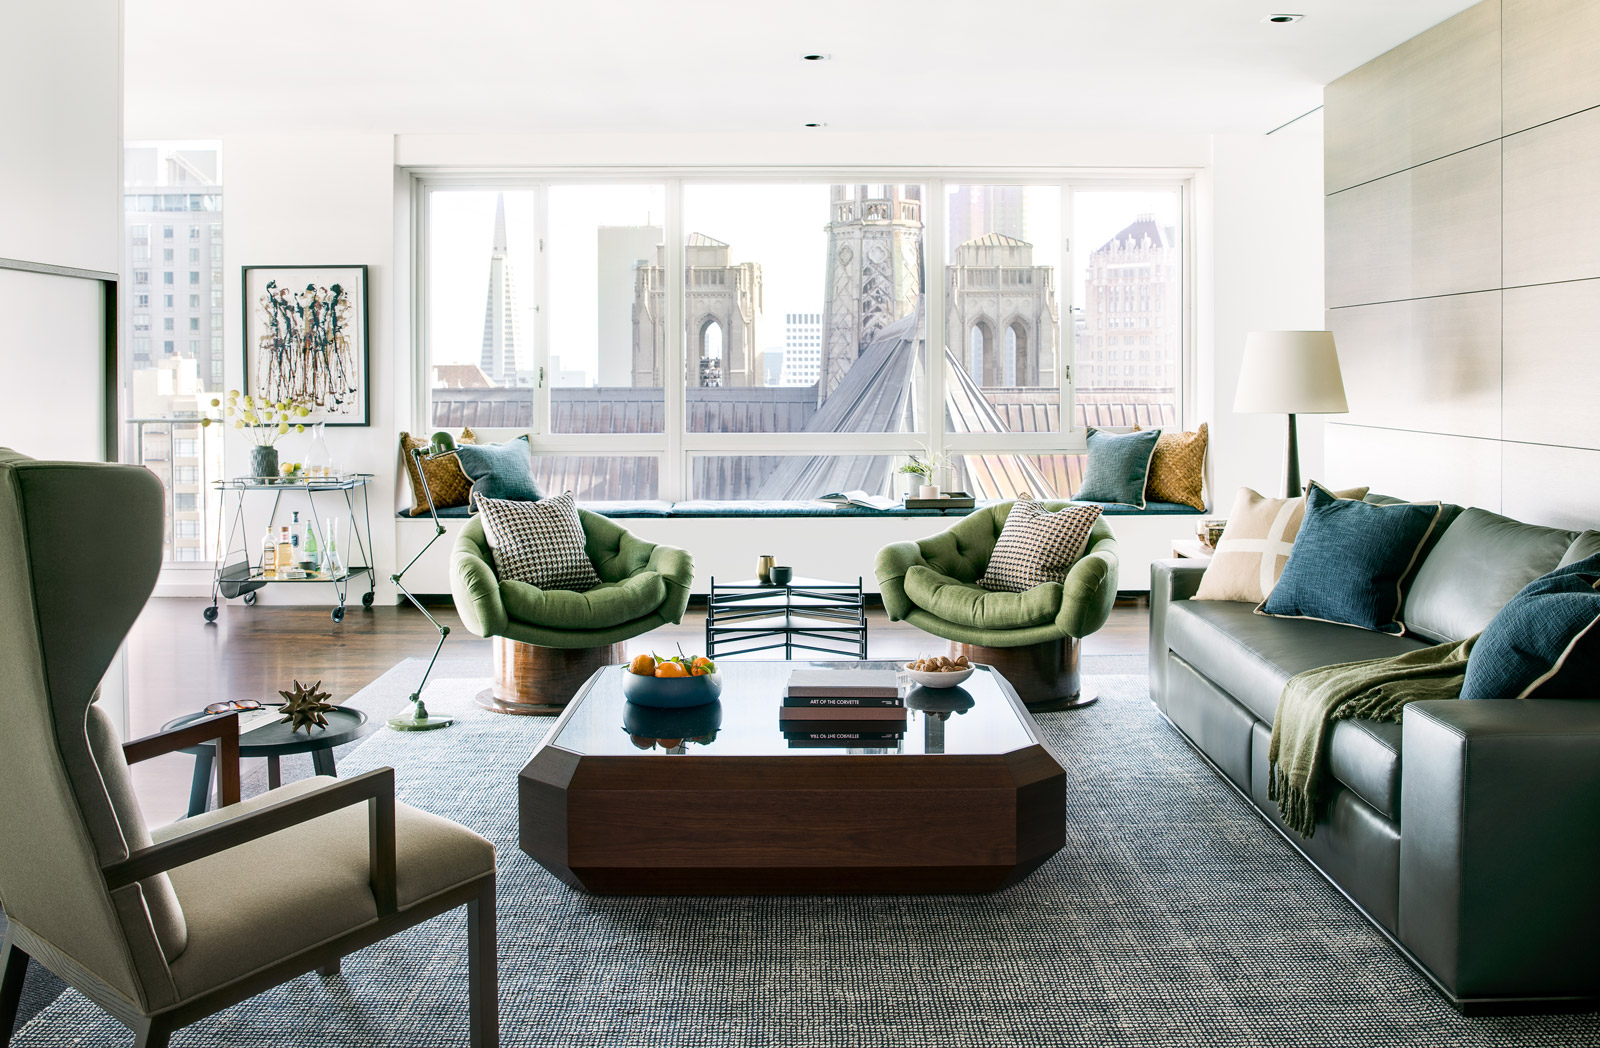 Beautiful interior design in high-rise living room with green leather couch and armchair seating